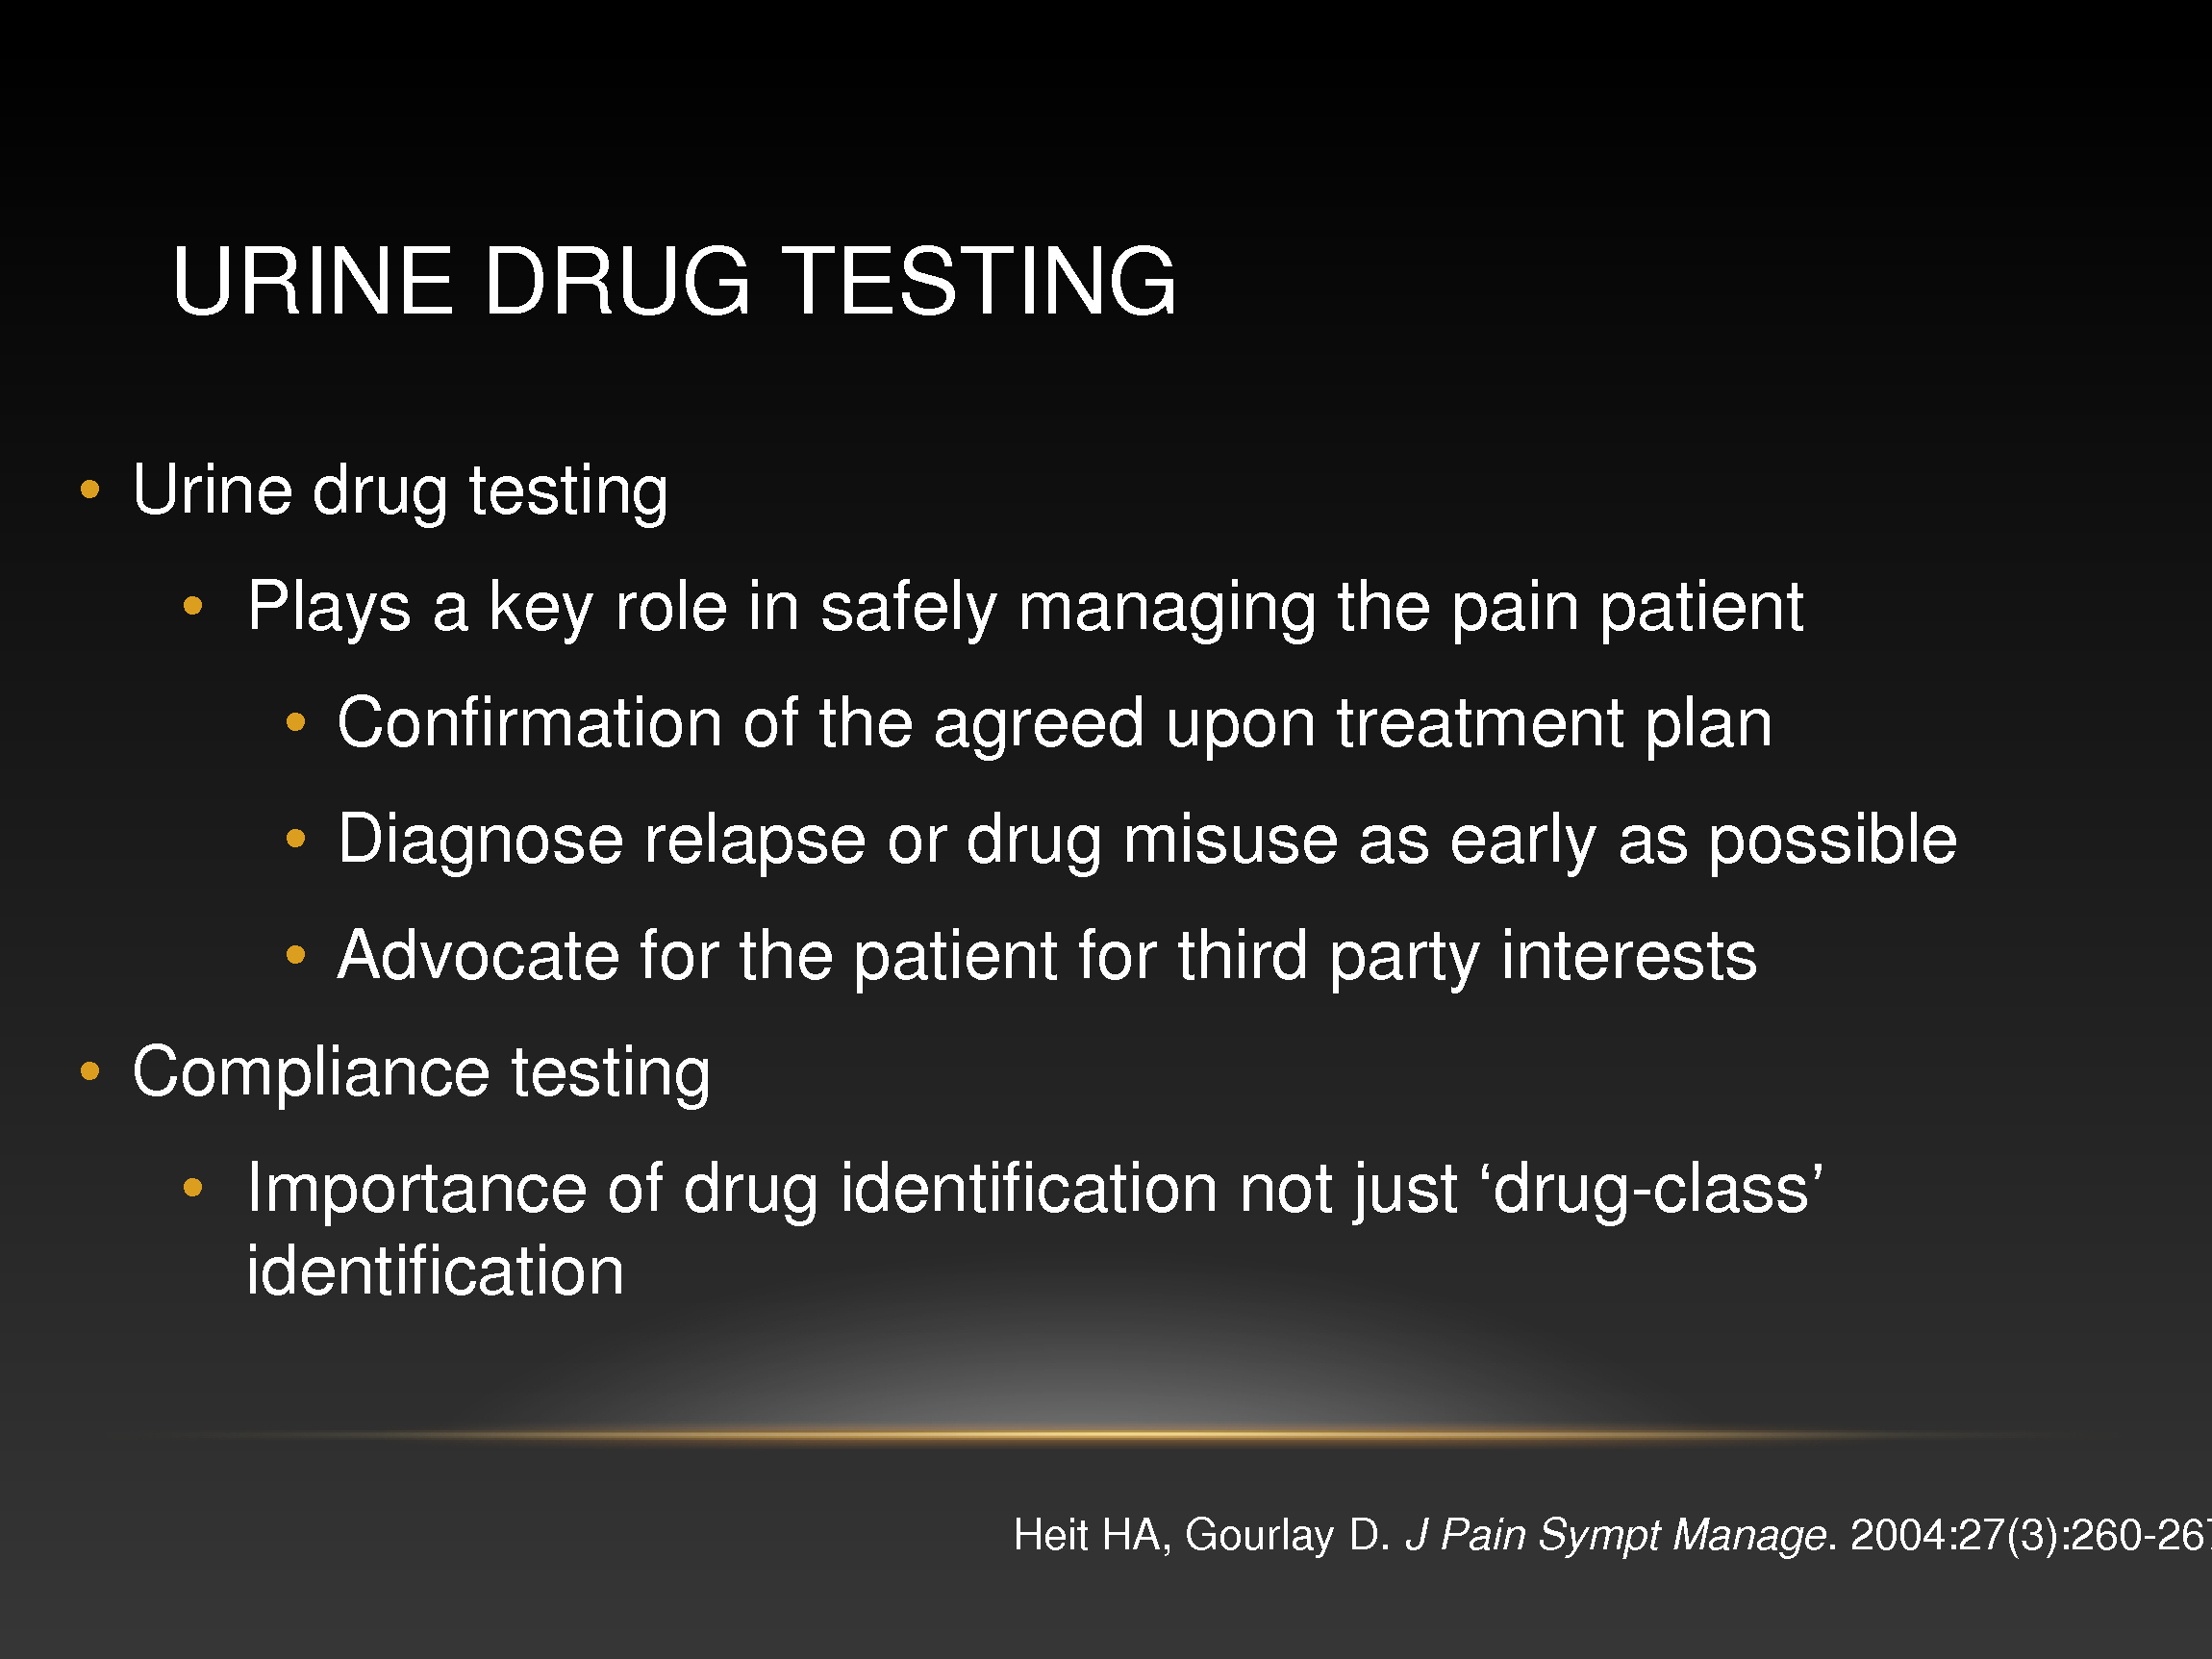 urine drug testing for patients with chronic pain